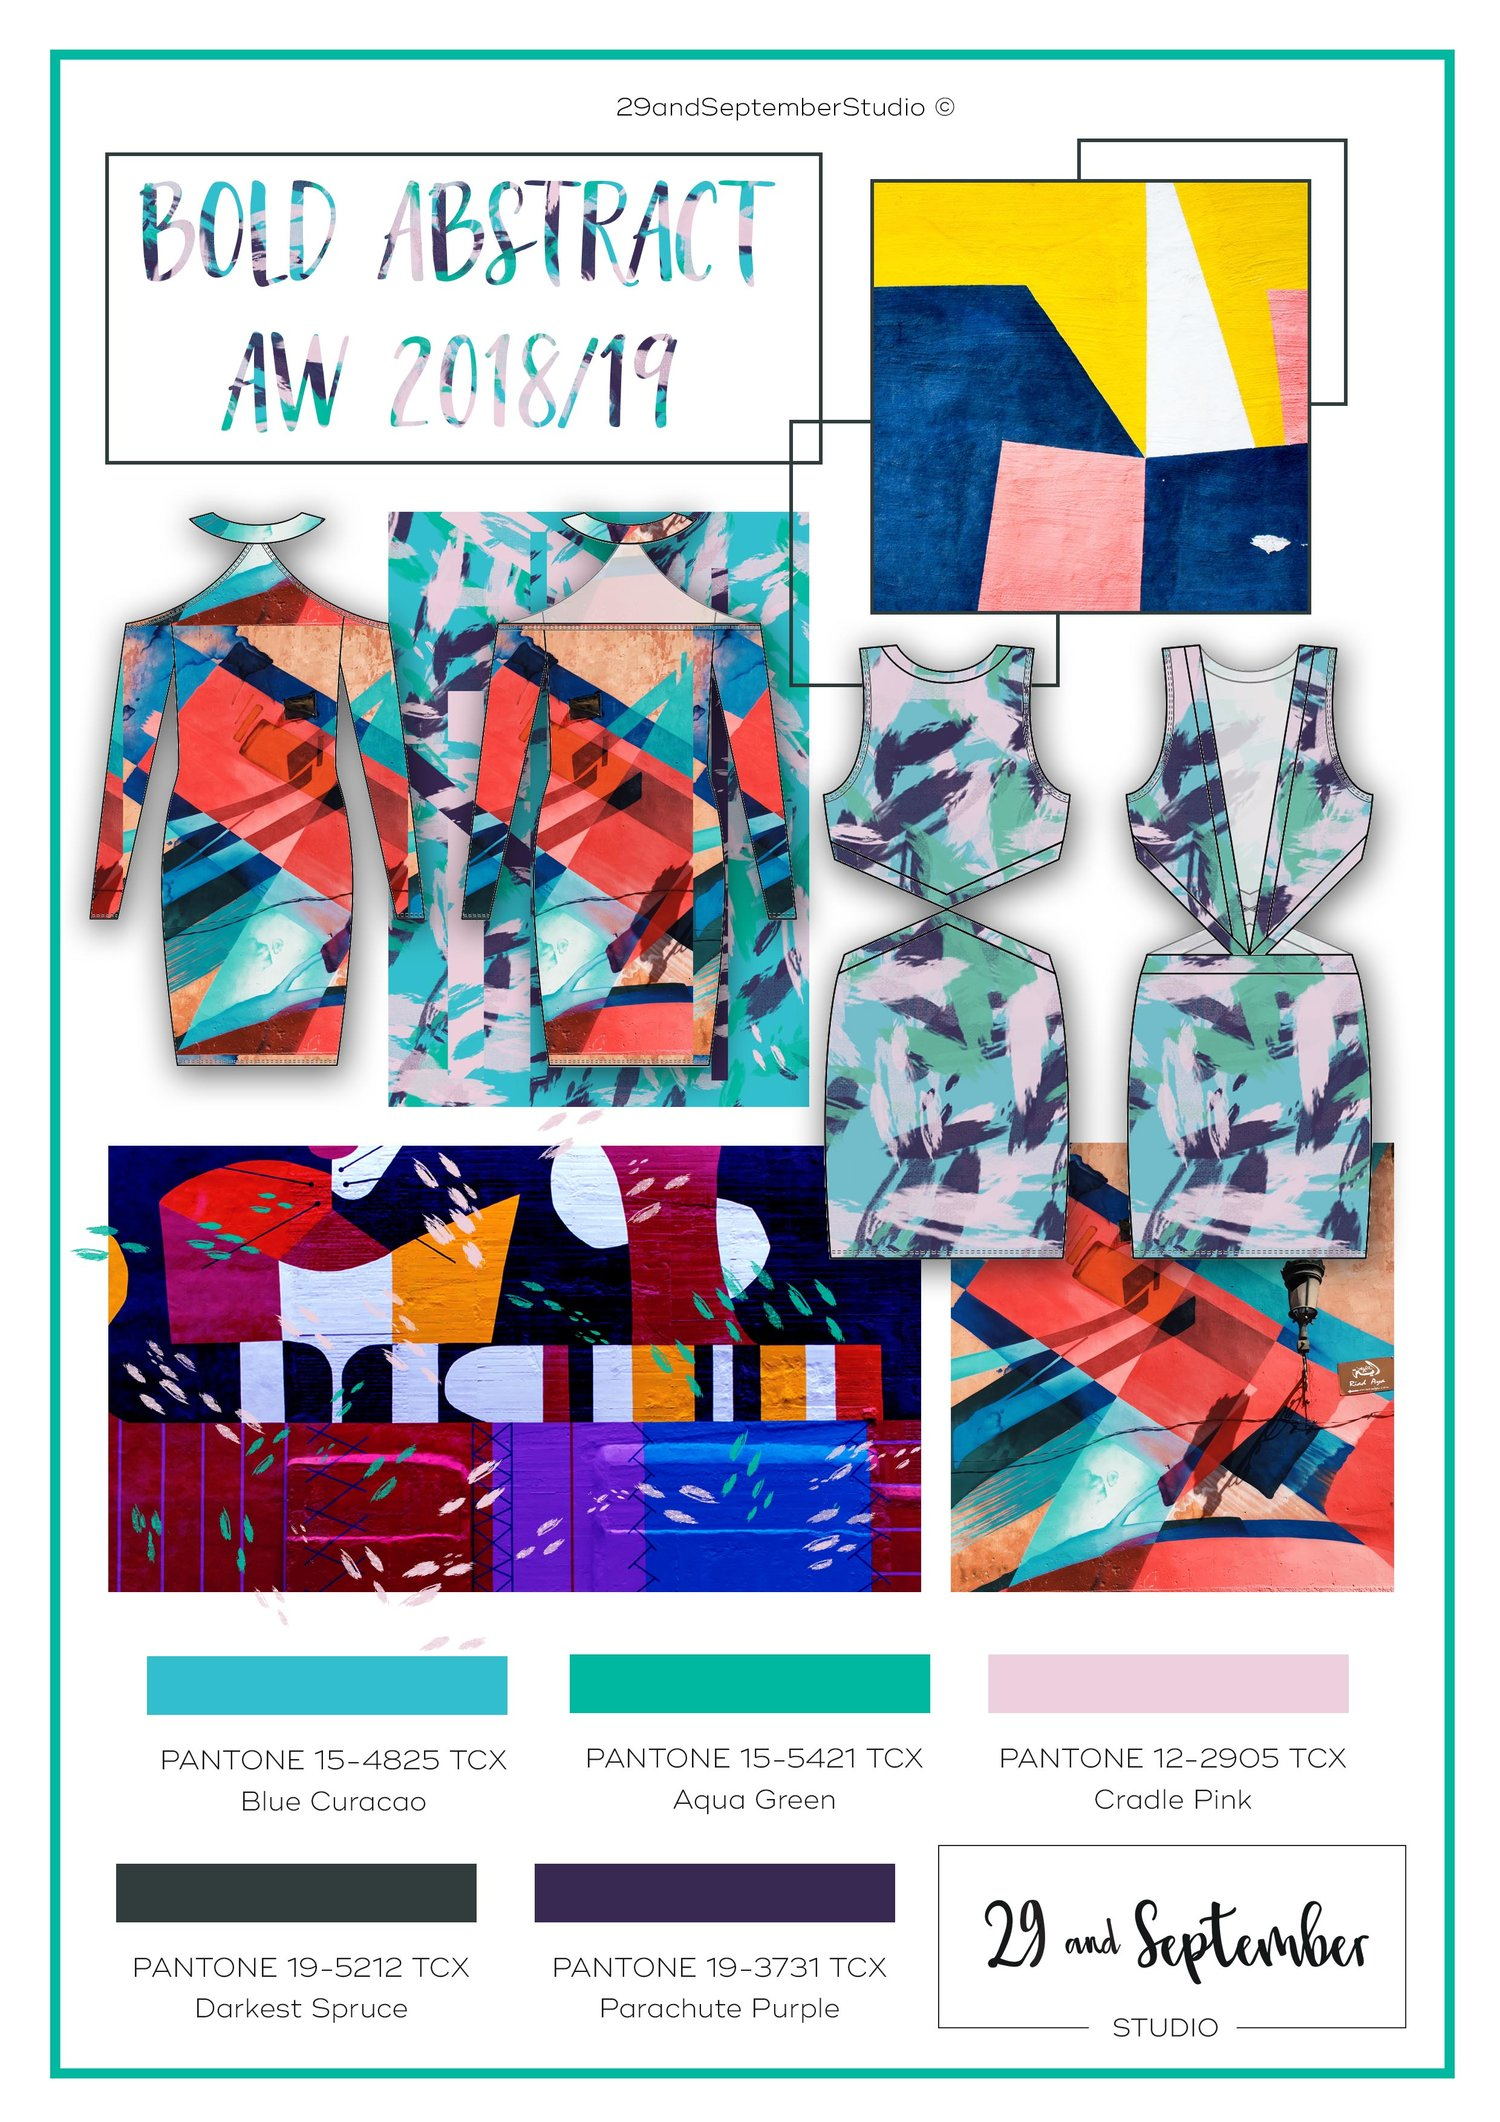 A/W 20/20 fashion trends; Bold Abstract — The Fashion Business Coach